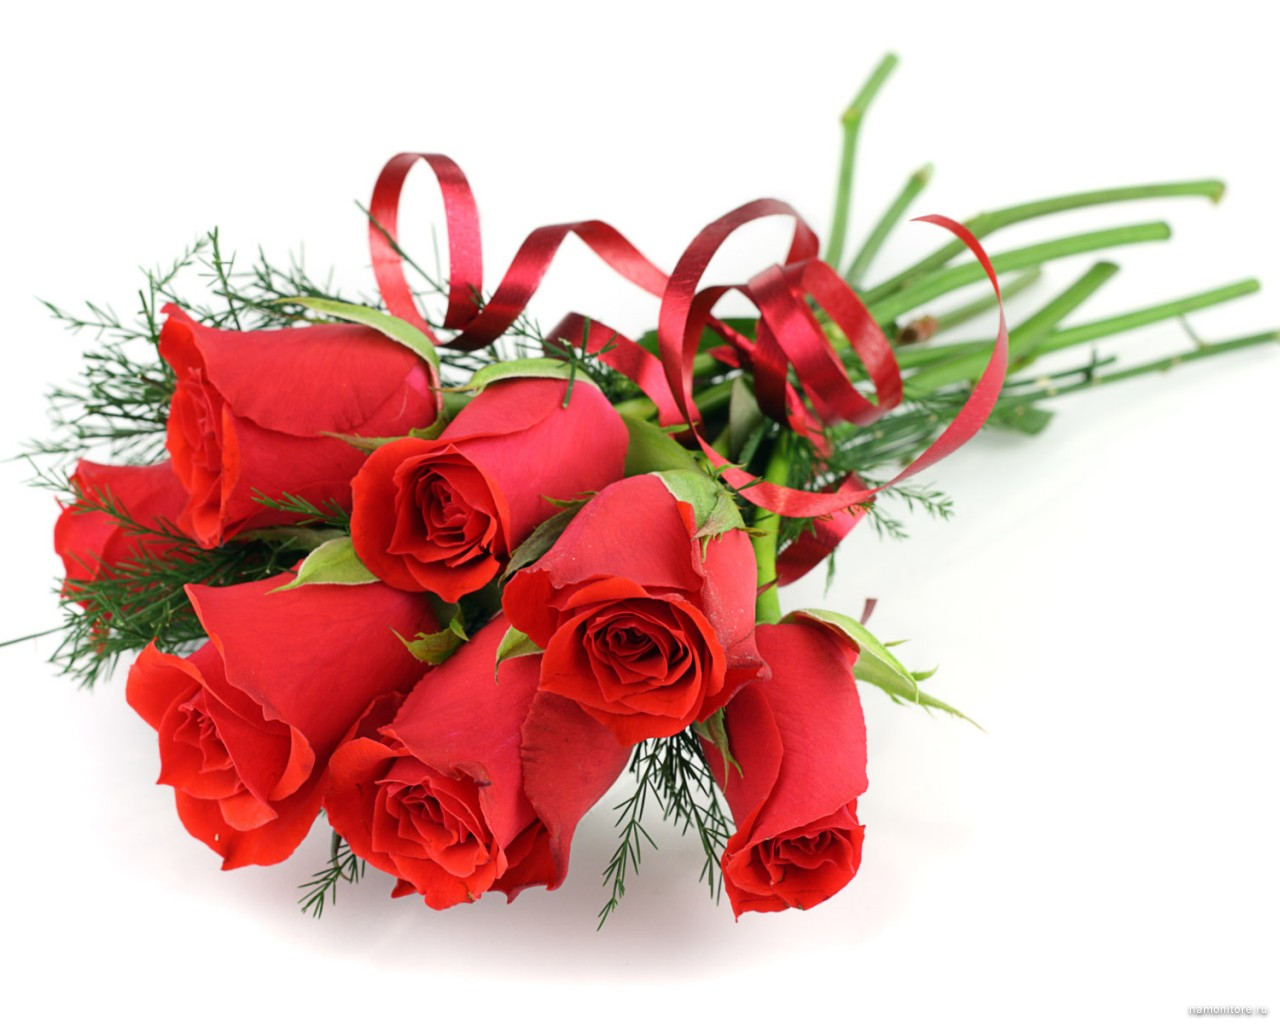 Clipart bouquet of red roses clipground bouquet of roses clip art izmirmasajfo